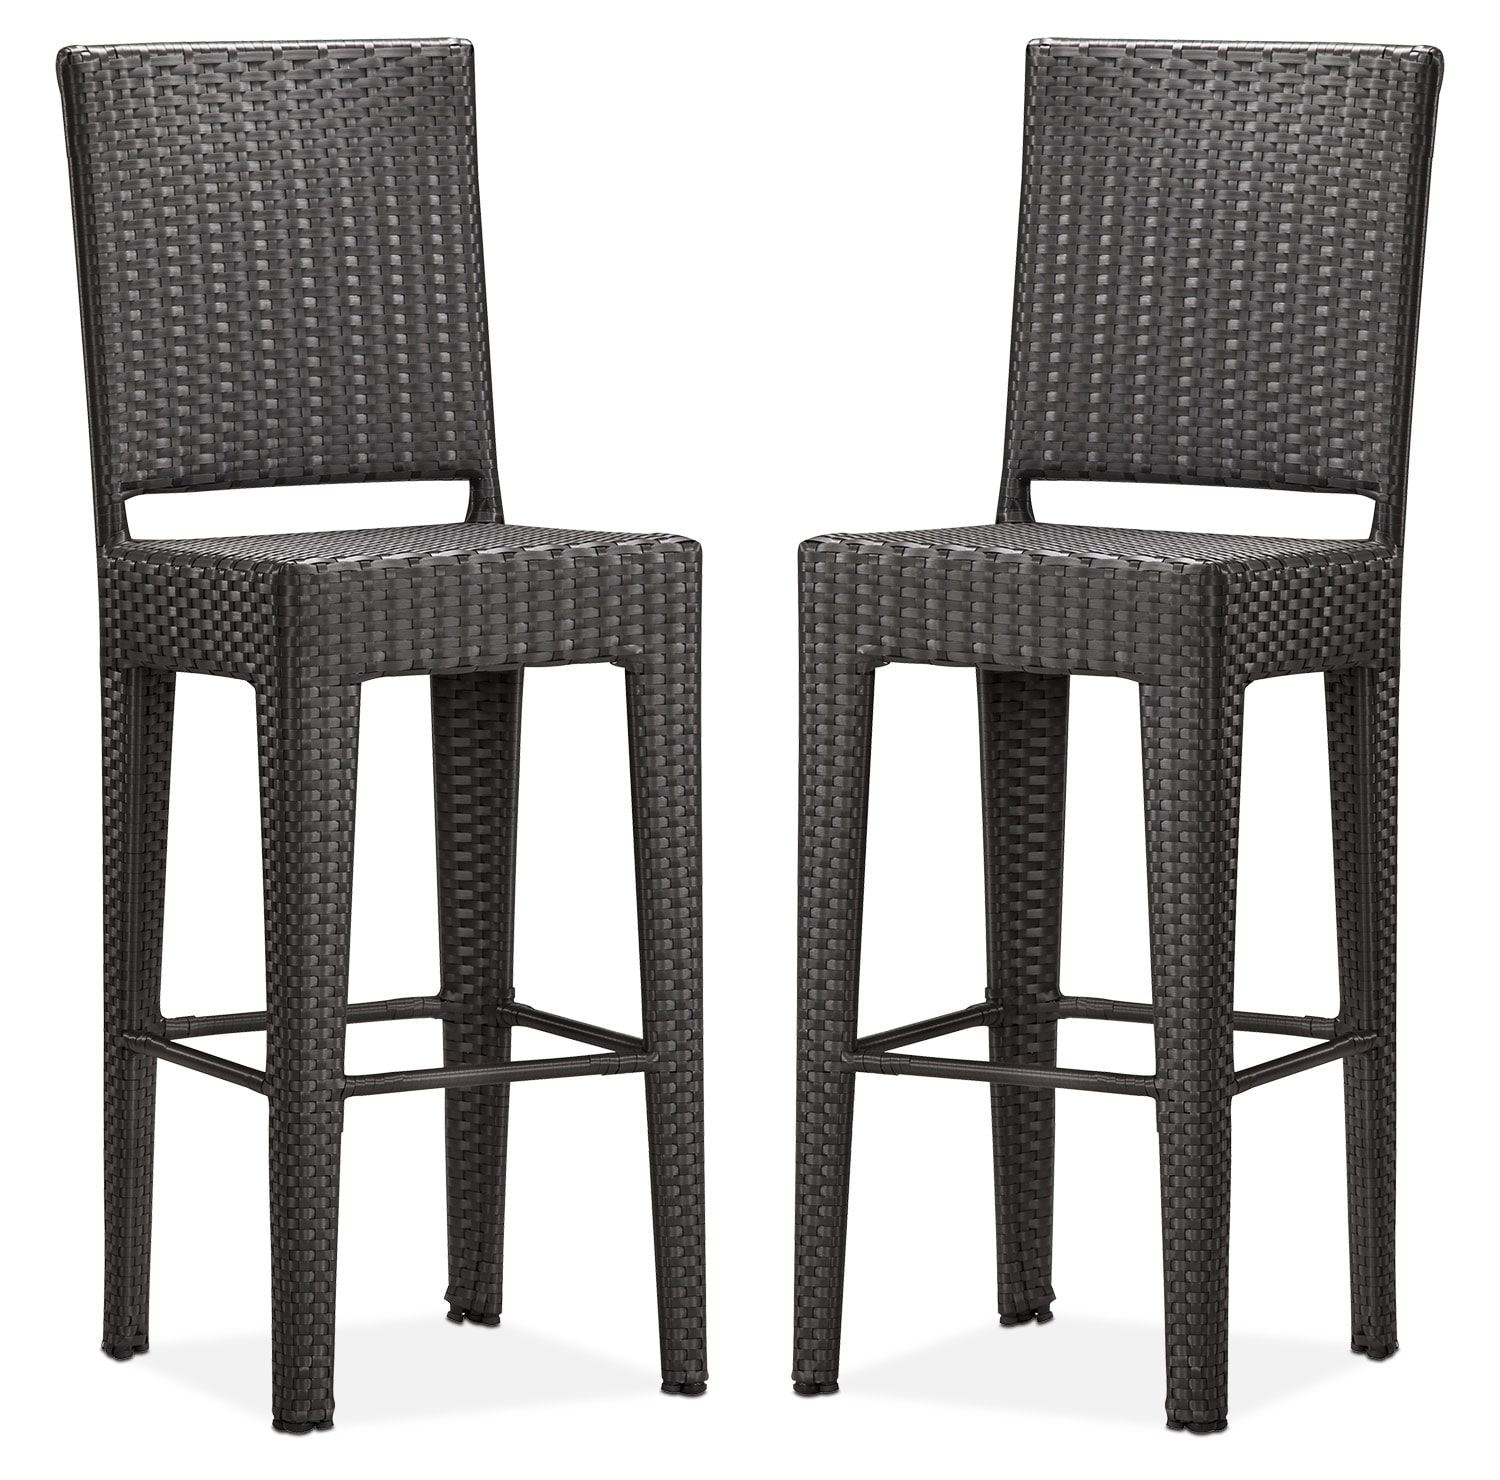 jaxton set of 2 outdoor barstools brown